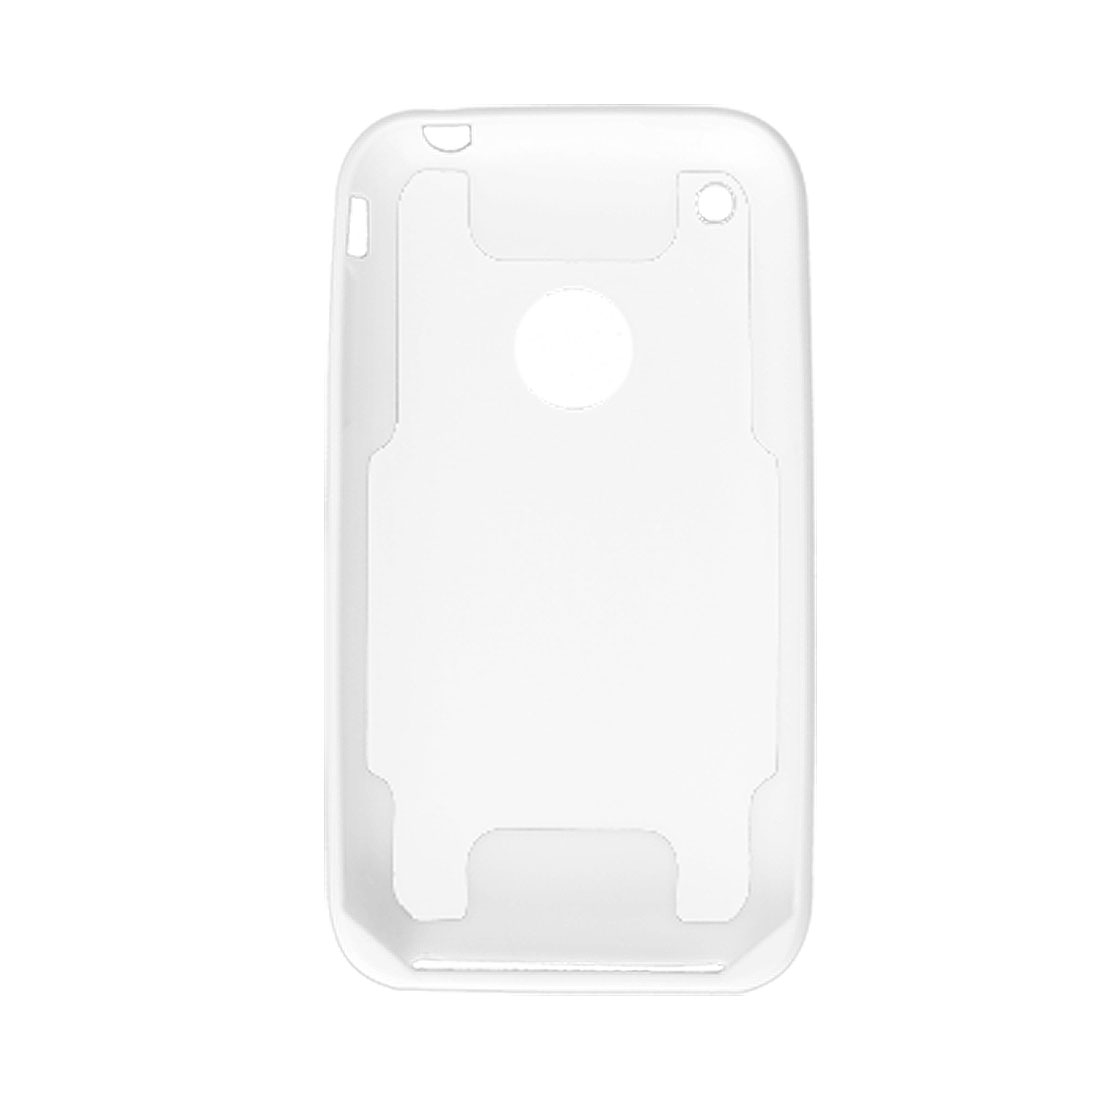 Clear White Hard Plastic Shell Case Cover for iPhone 3G